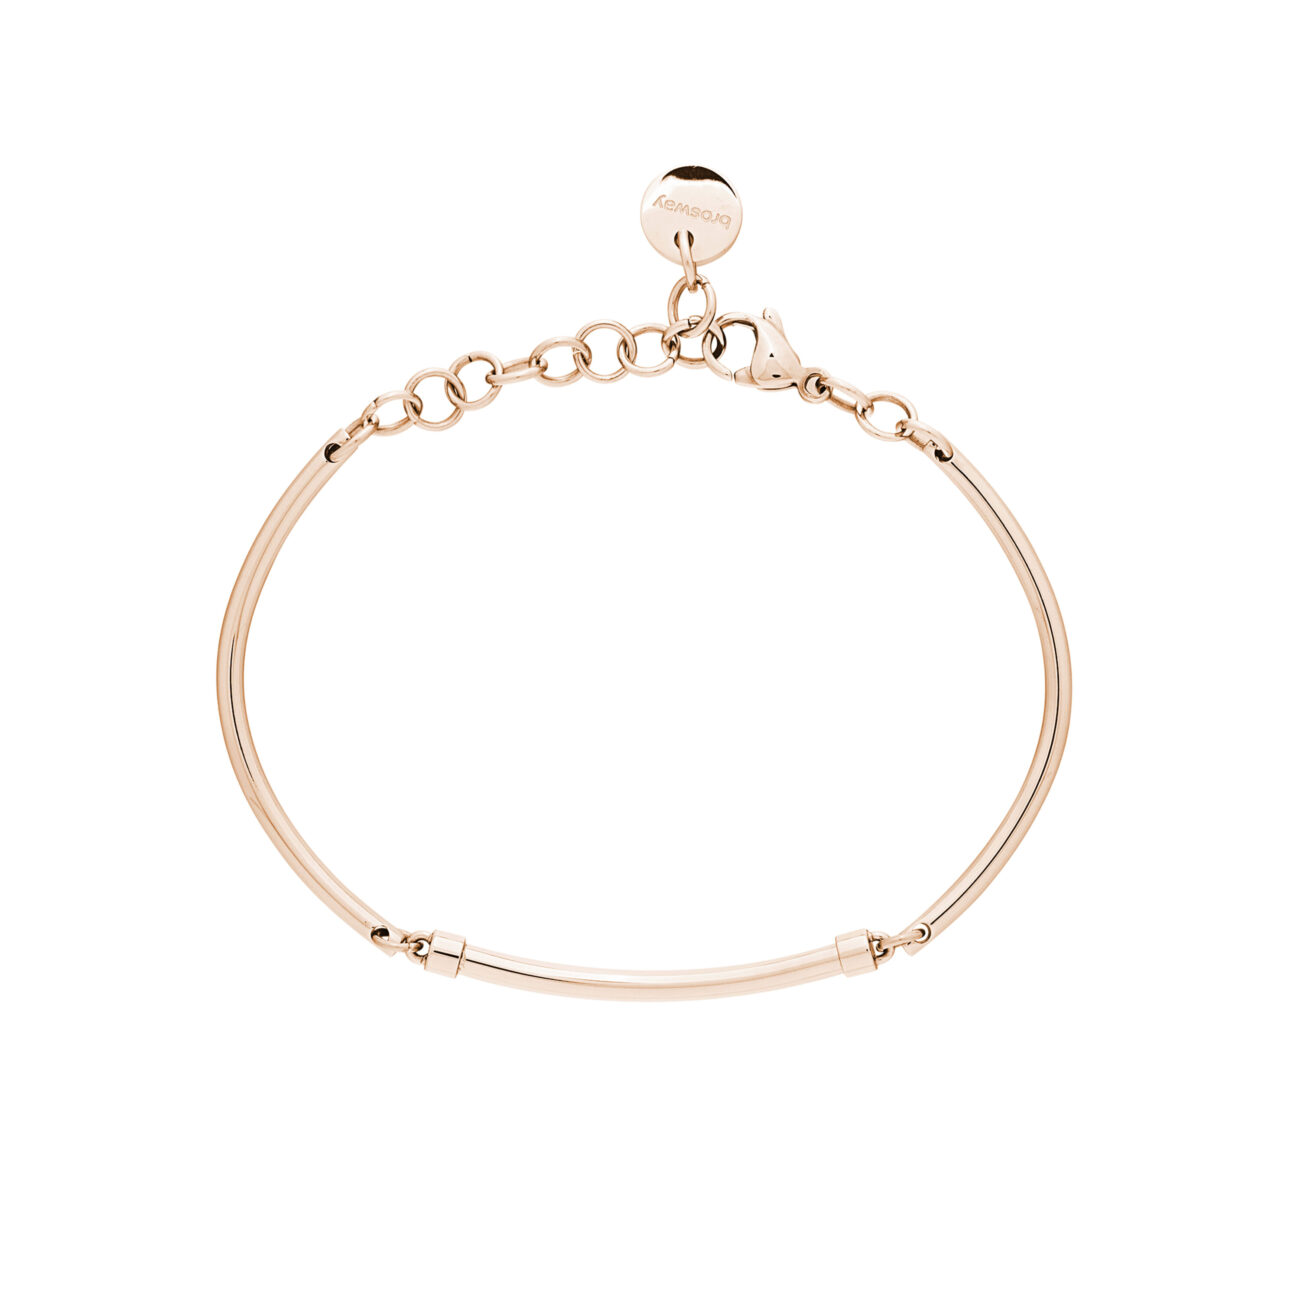 316L stainless steel semi-rigid bracelet and rose gold pvd